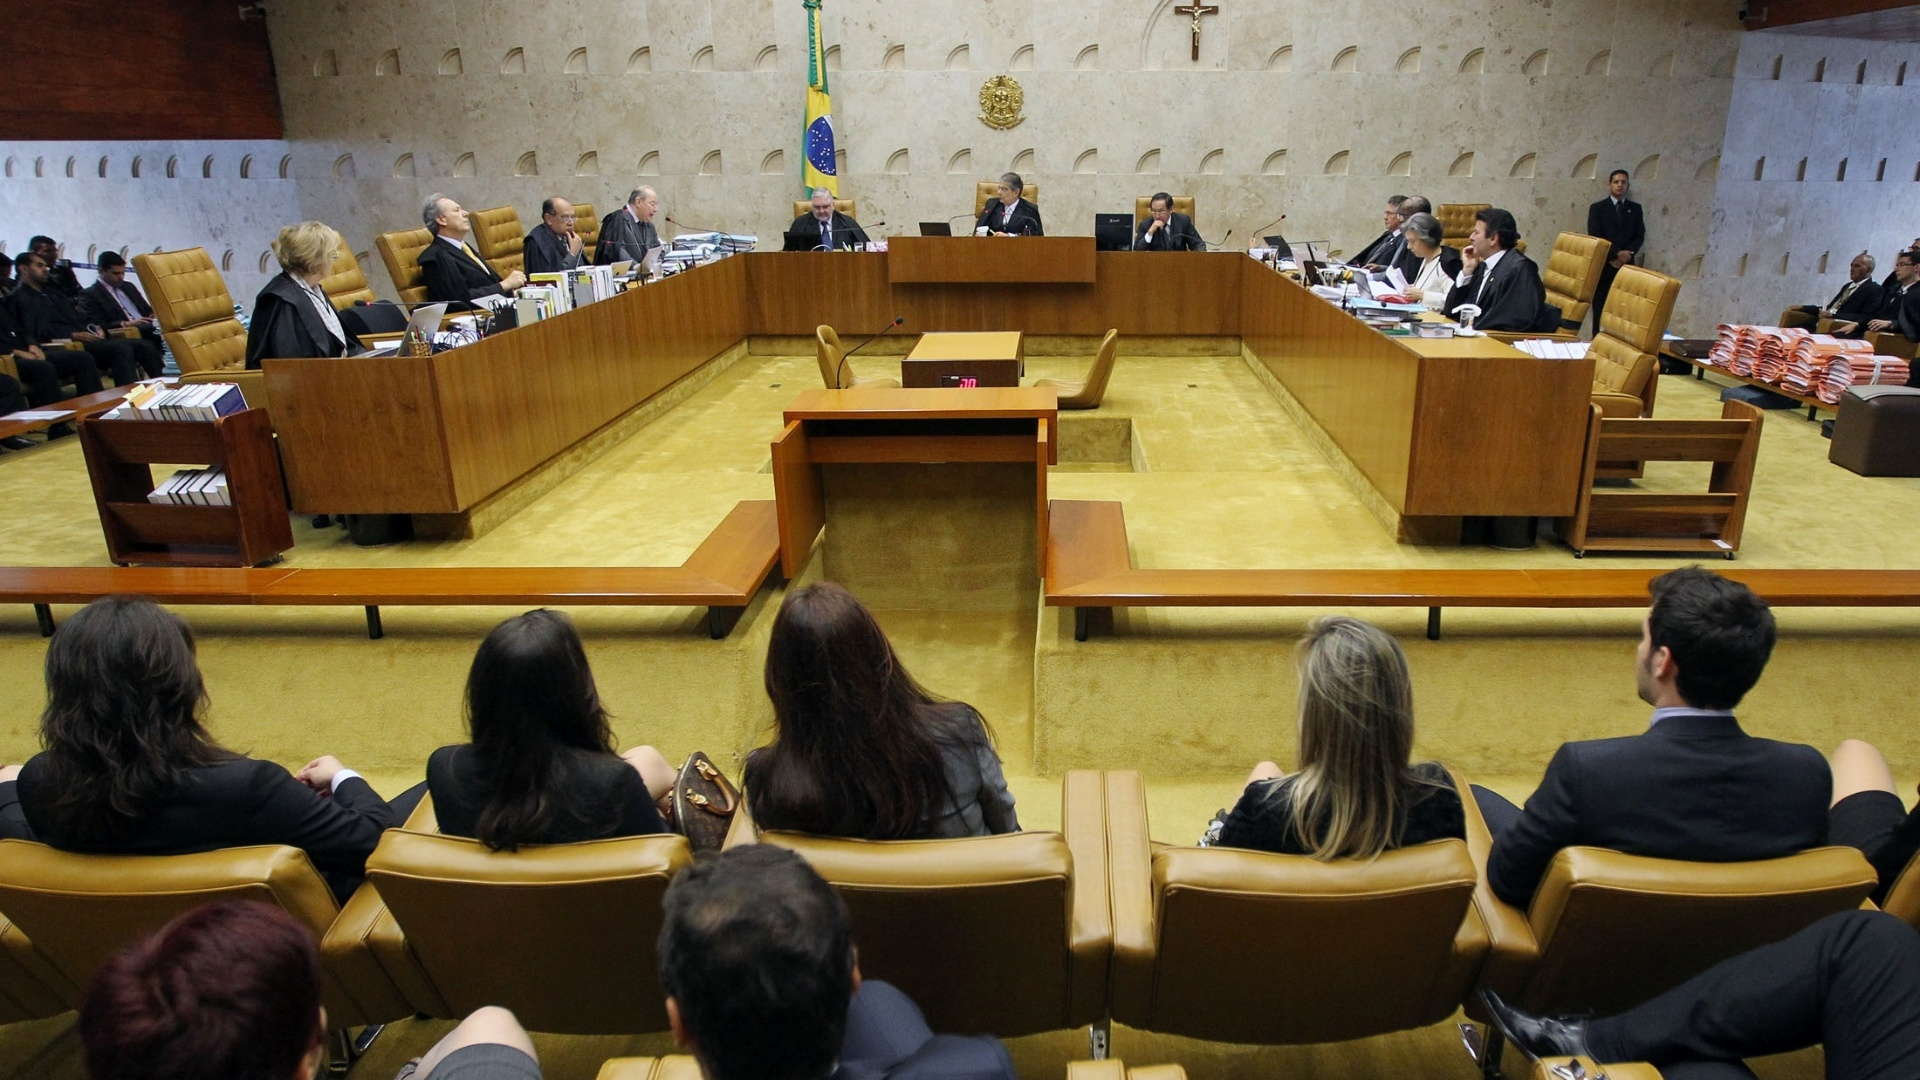 14.nov.2012 - Advogados e pblico acompanham sesso de julgamento do mensalo no Supremo Tribunal Federal que define pena para ex-dirigentes do Banco Rural